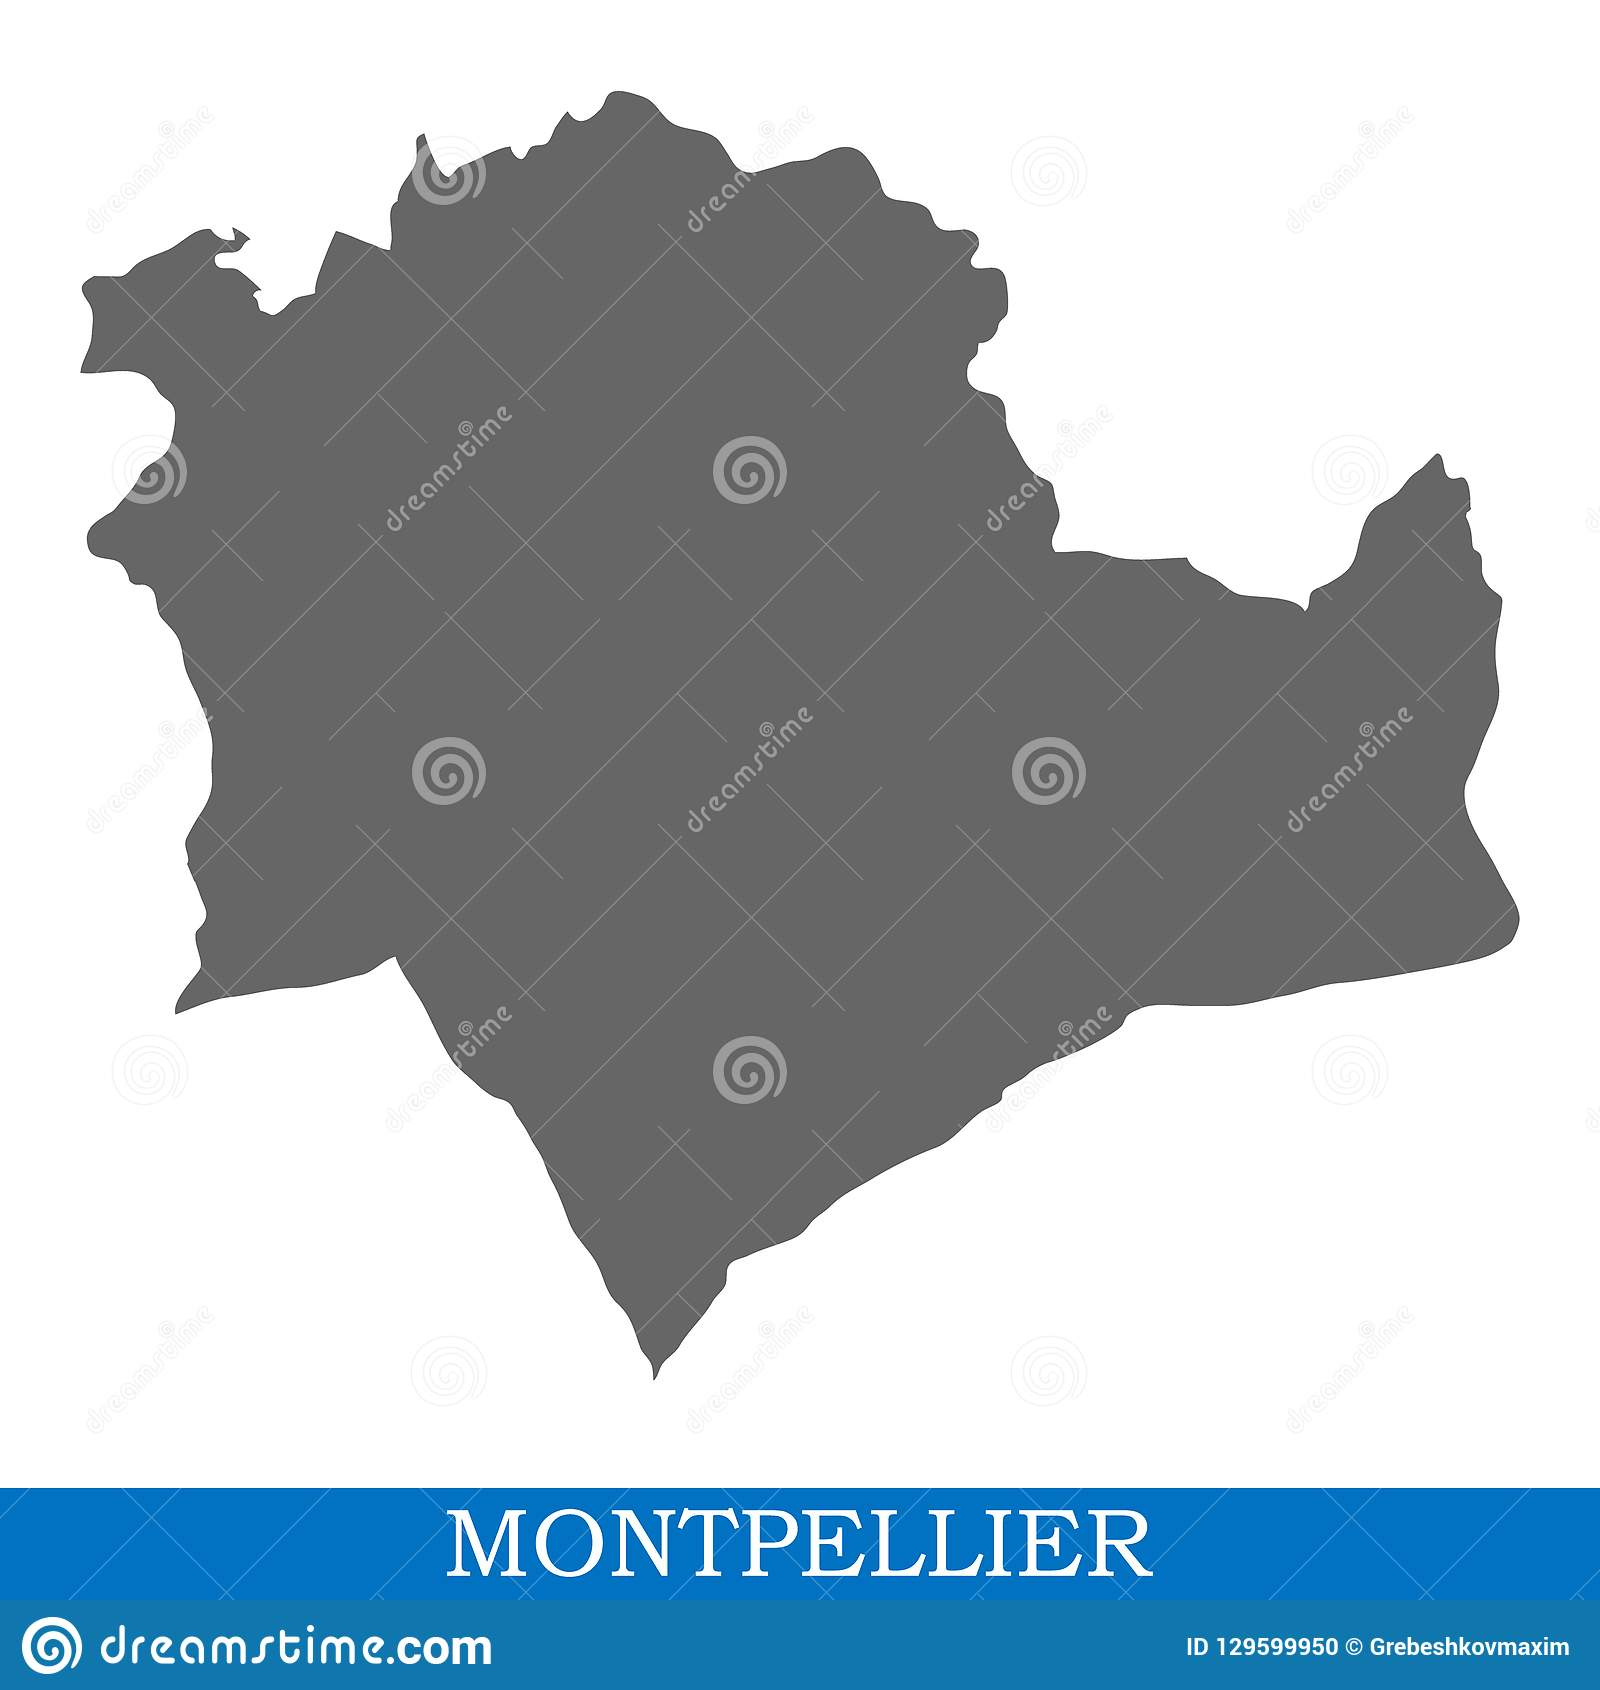 Montpellier Map Of France.High Quality Map City Of France Stock Illustration Illustration Of